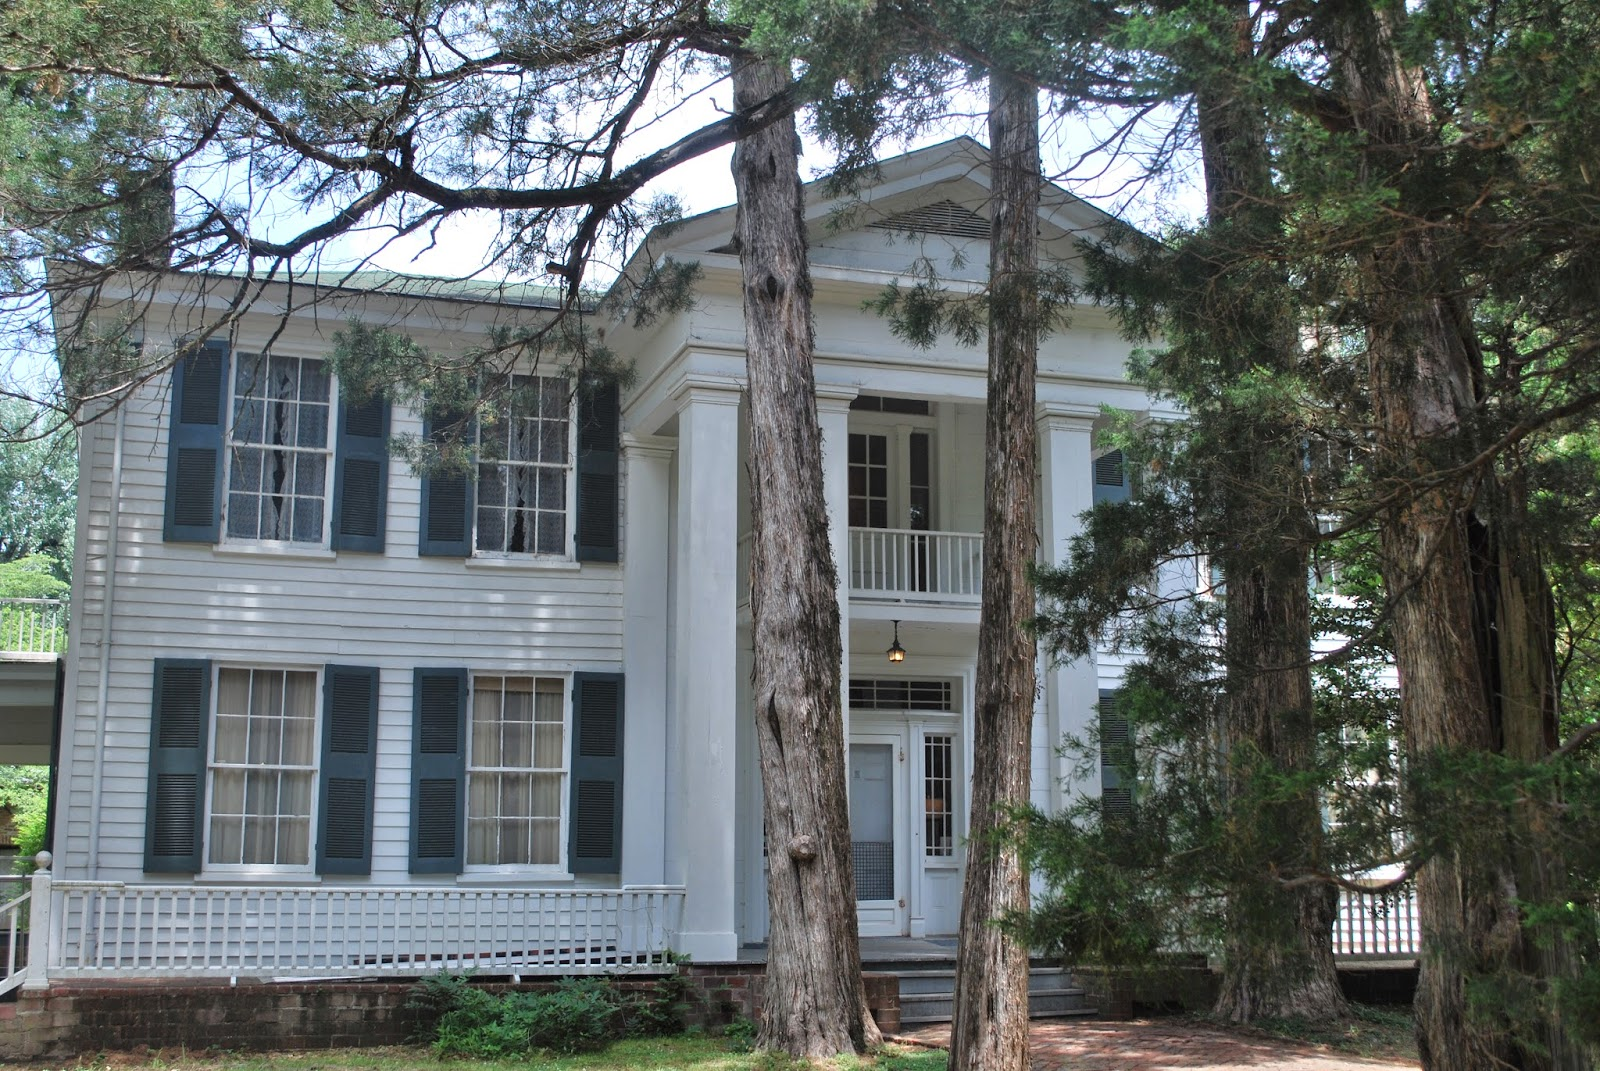 Arts food a visual tour of rowan oak museum william for Rowan house